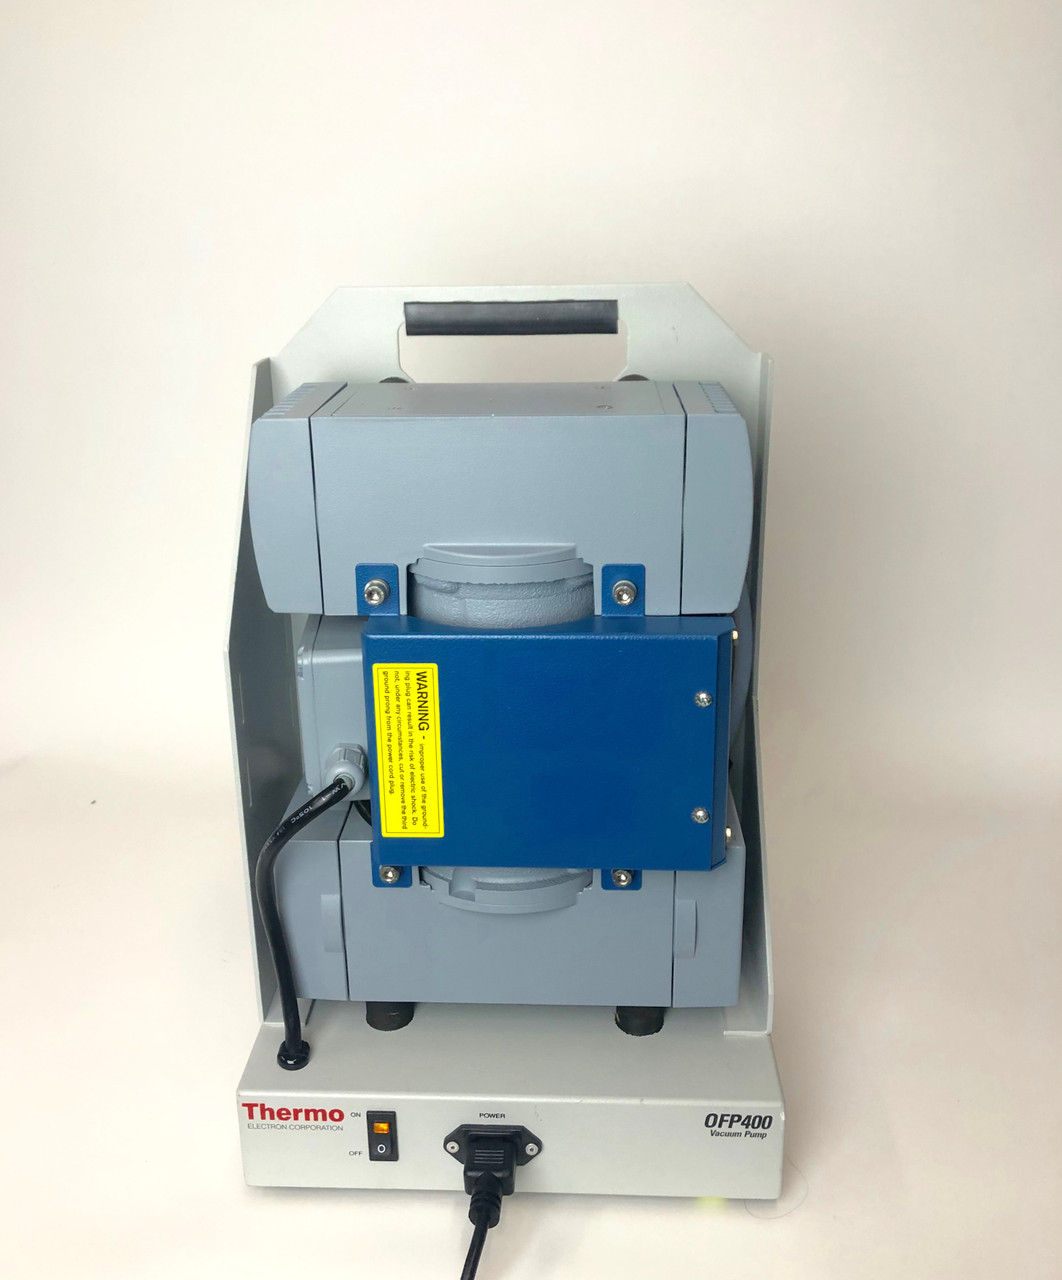 Thermo Oil Free Vacuum Pump Ofp400 115 Cheshire Enterprise